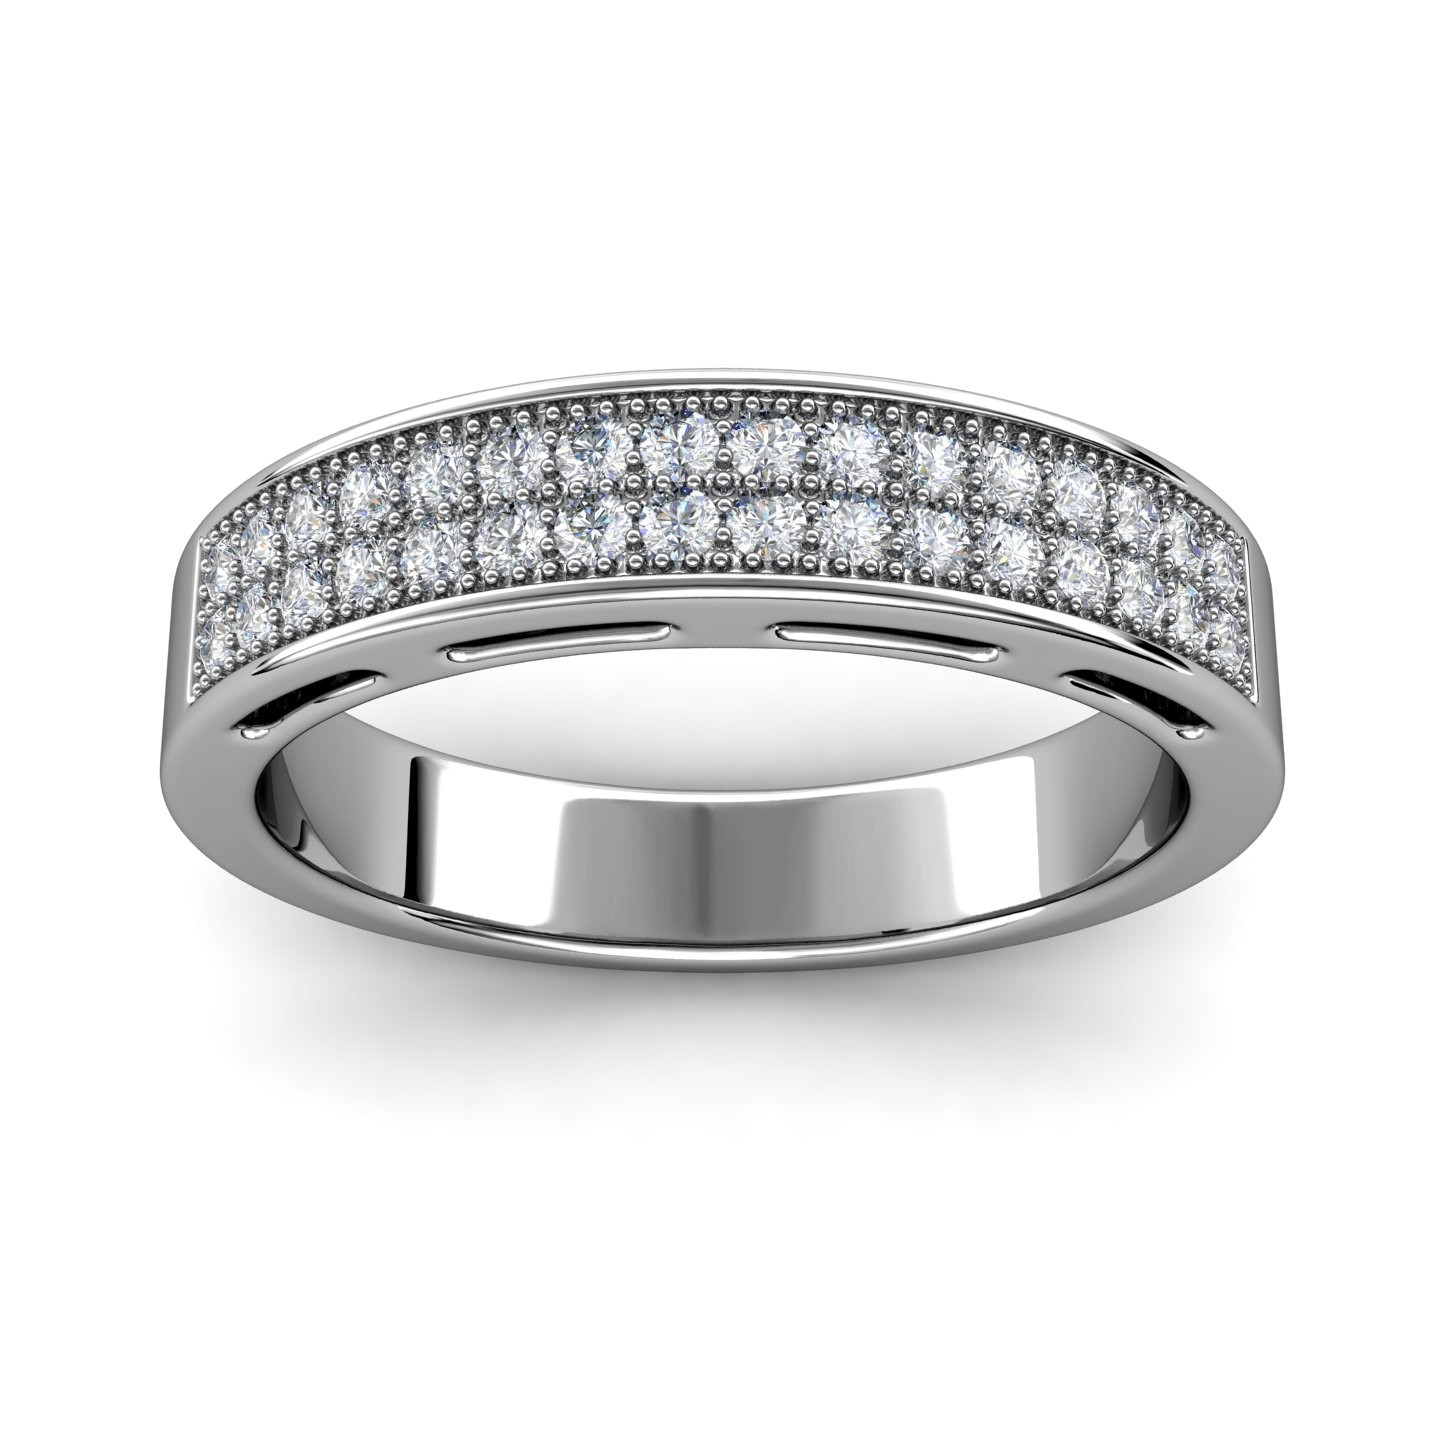 The Melissa Double Row Ring